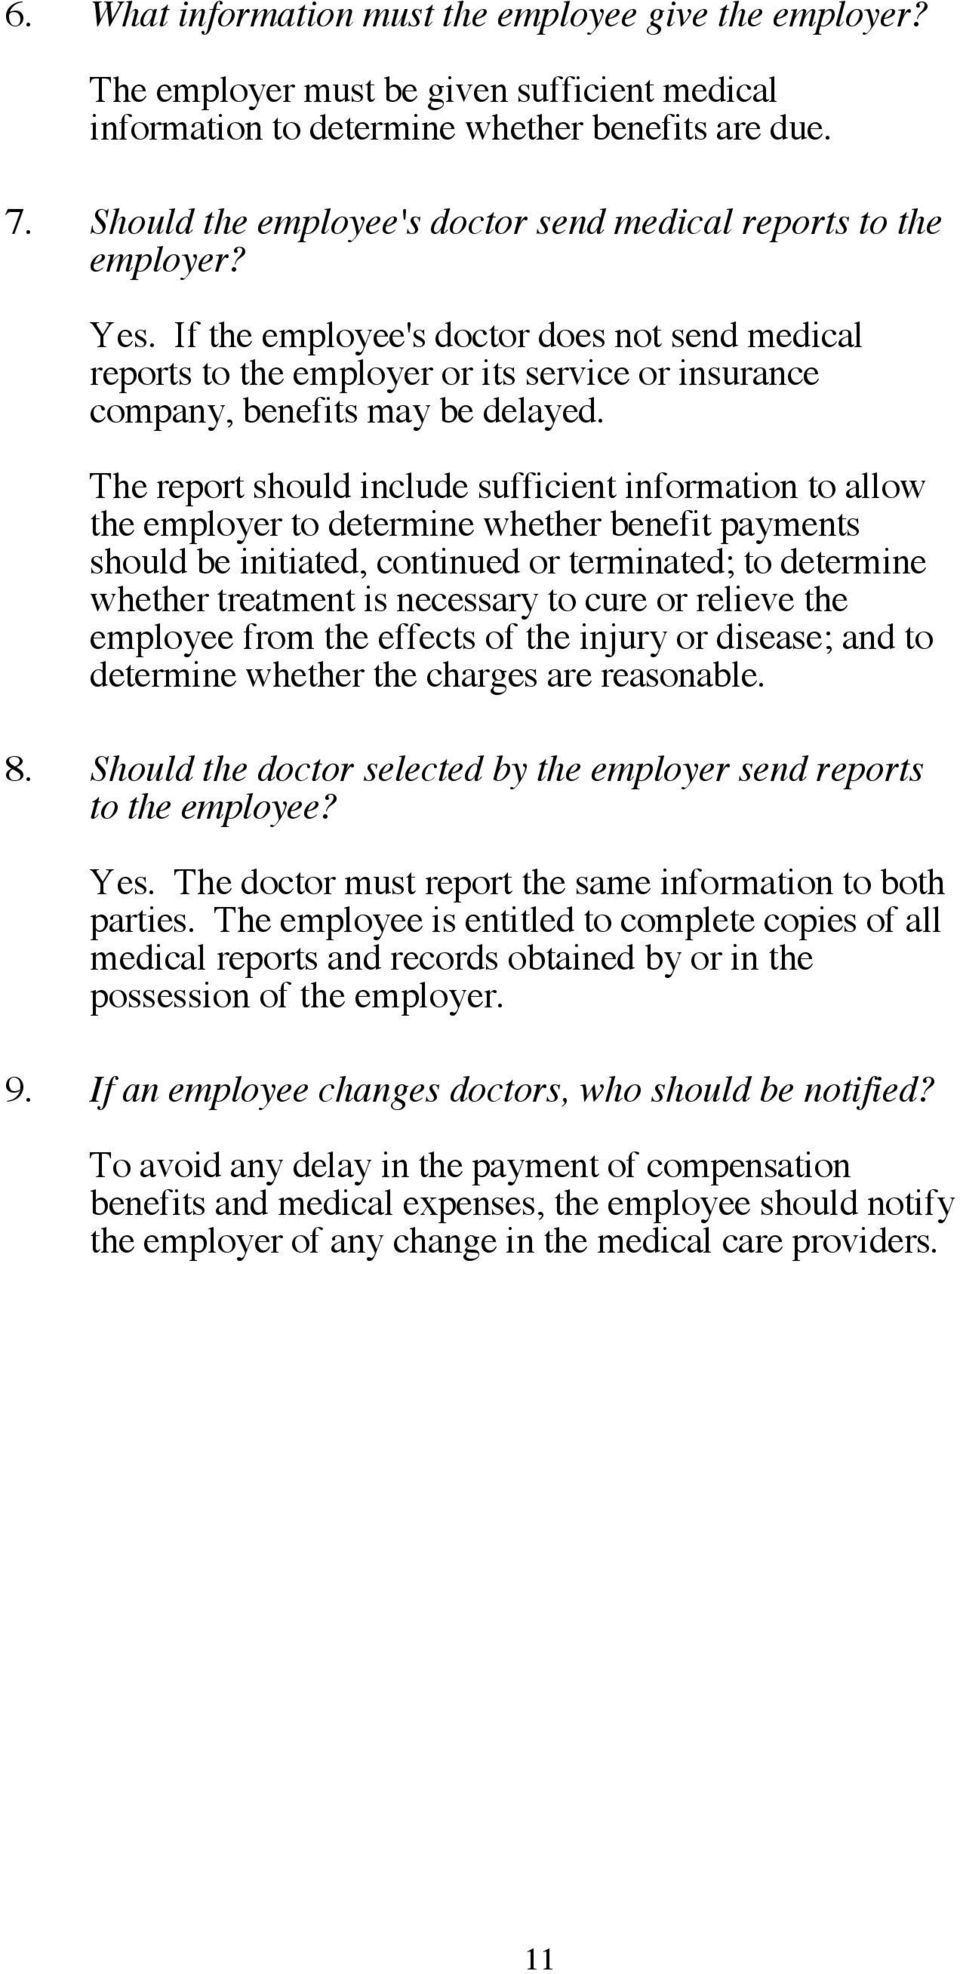 If the employee's doctor does not send medical reports to the employer or its service or insurance company, benefits may be delayed.